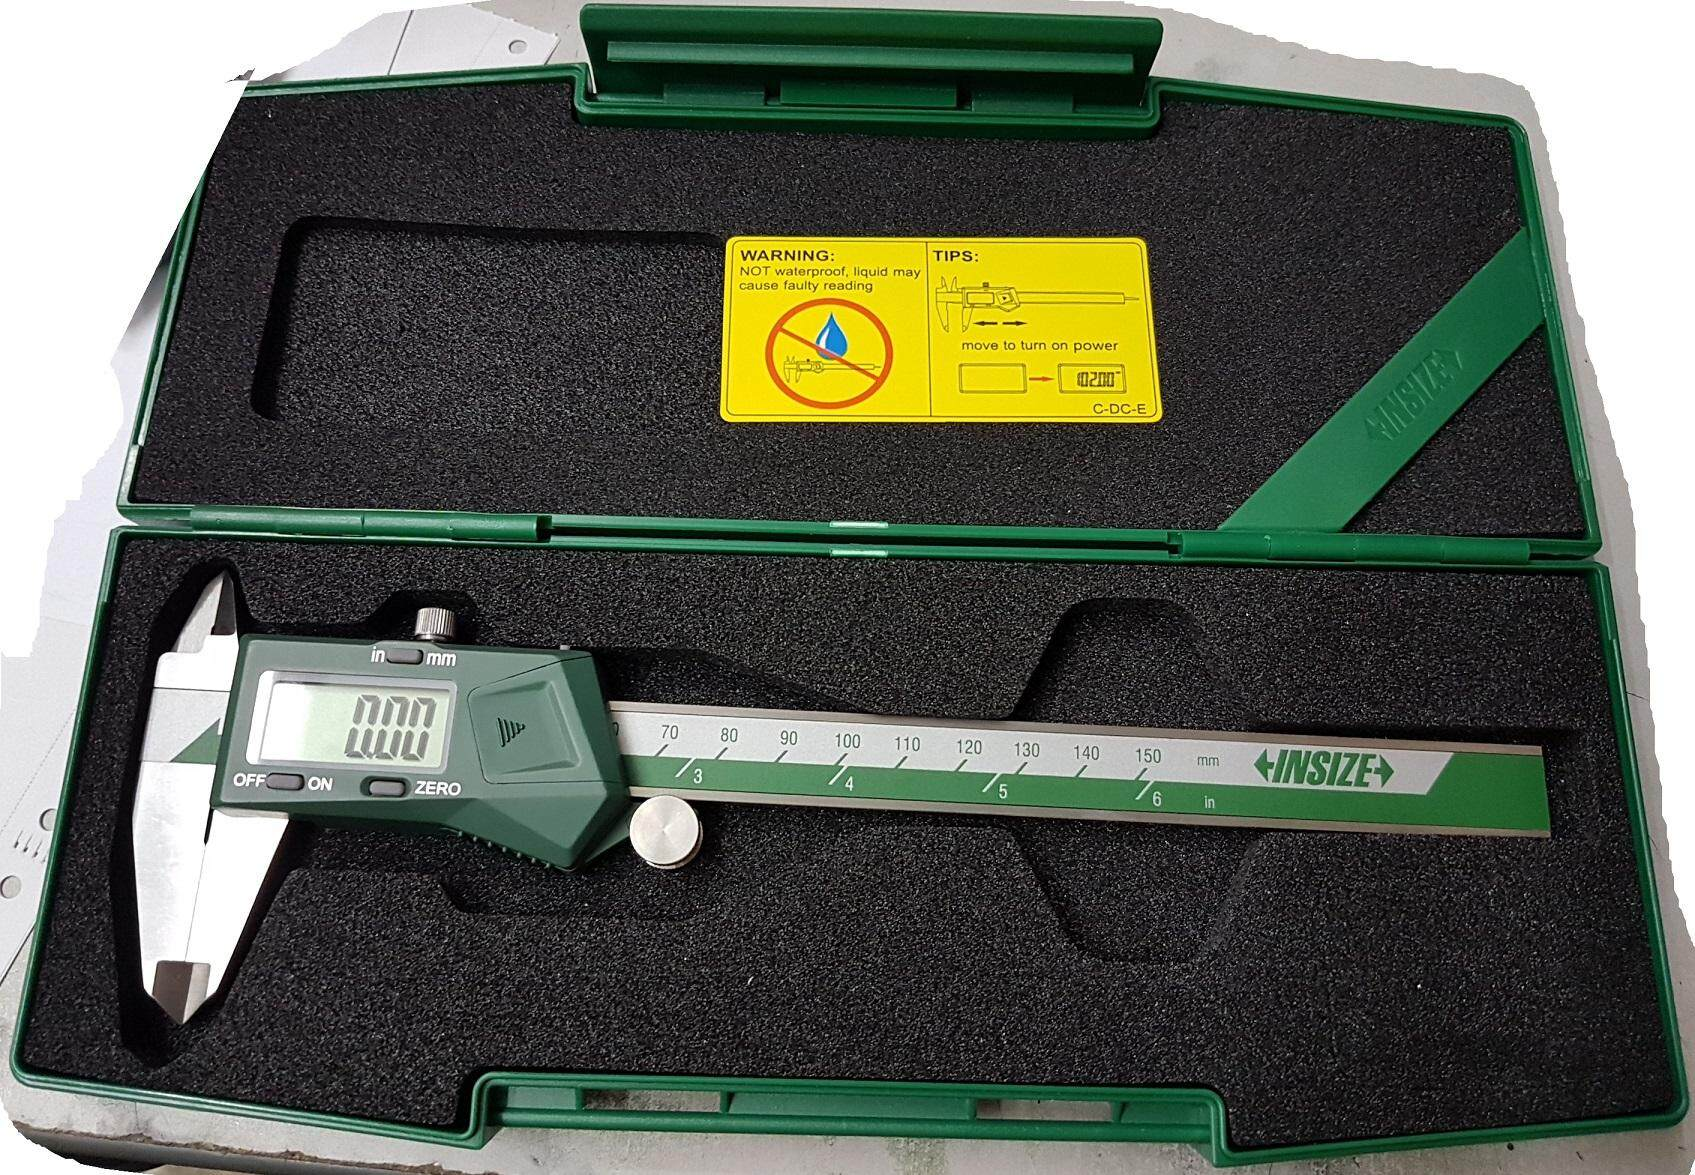 1108 150 insize digital electronic caliper measure tool hand ruler measuring unit stainless steel battery data output cable auto power off supply precision